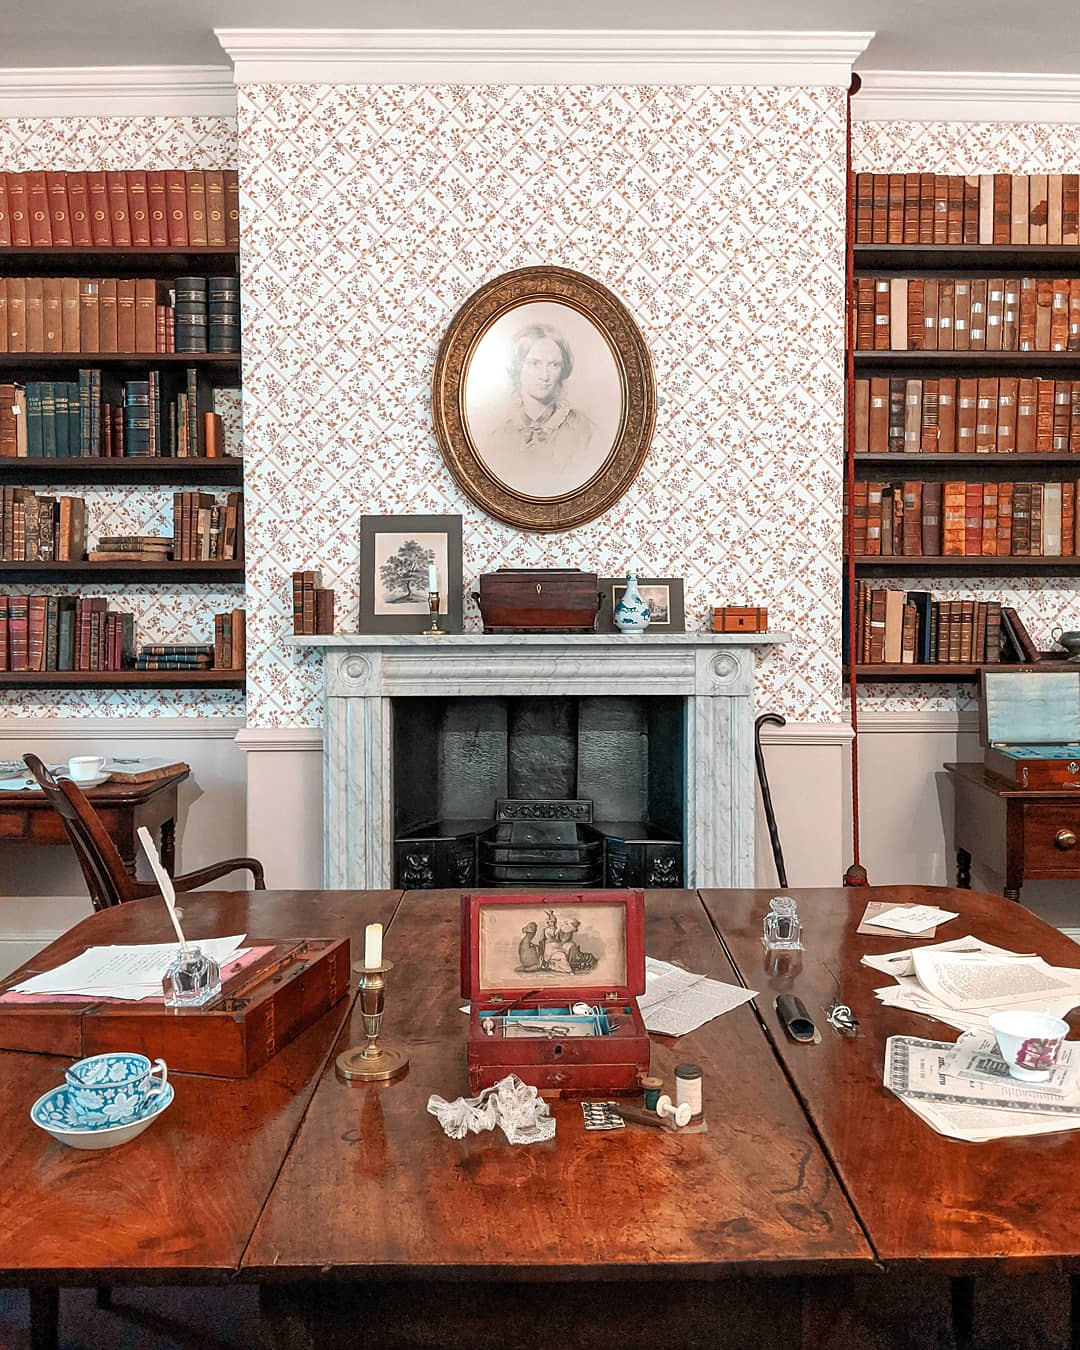 The Dining Room at Brontë Parsonage Museum with a portrait of Charlotte Brontë